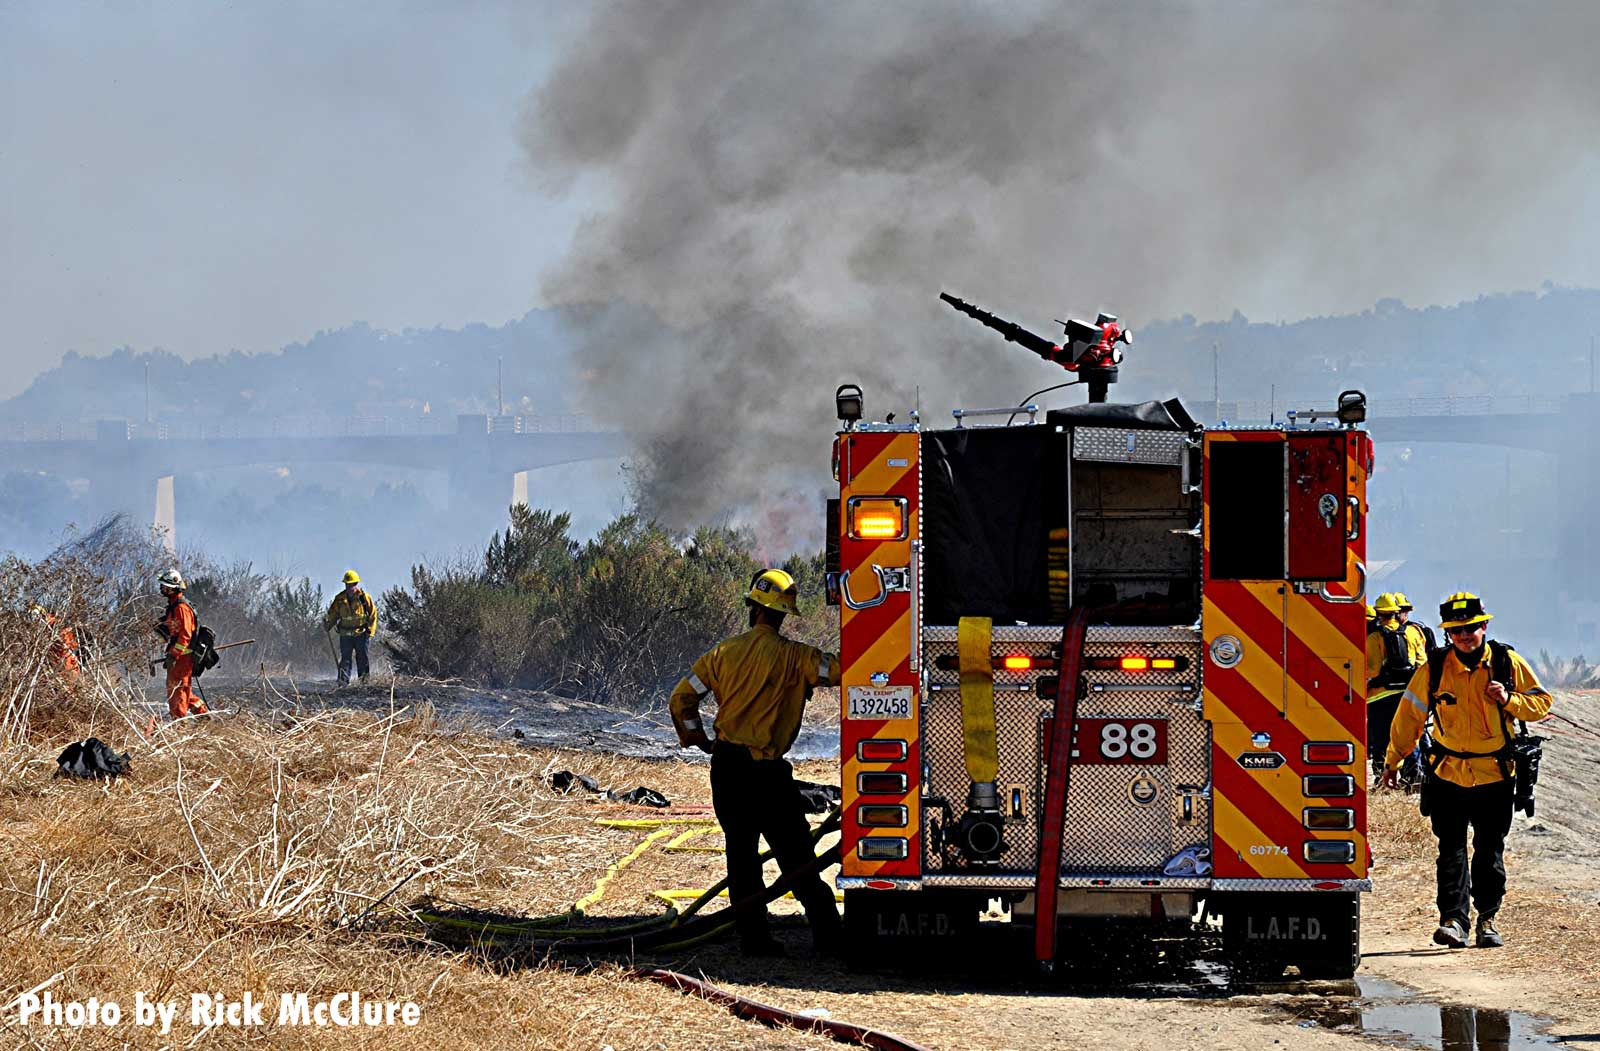 LAFD rig with smoke from vegetation fire in background